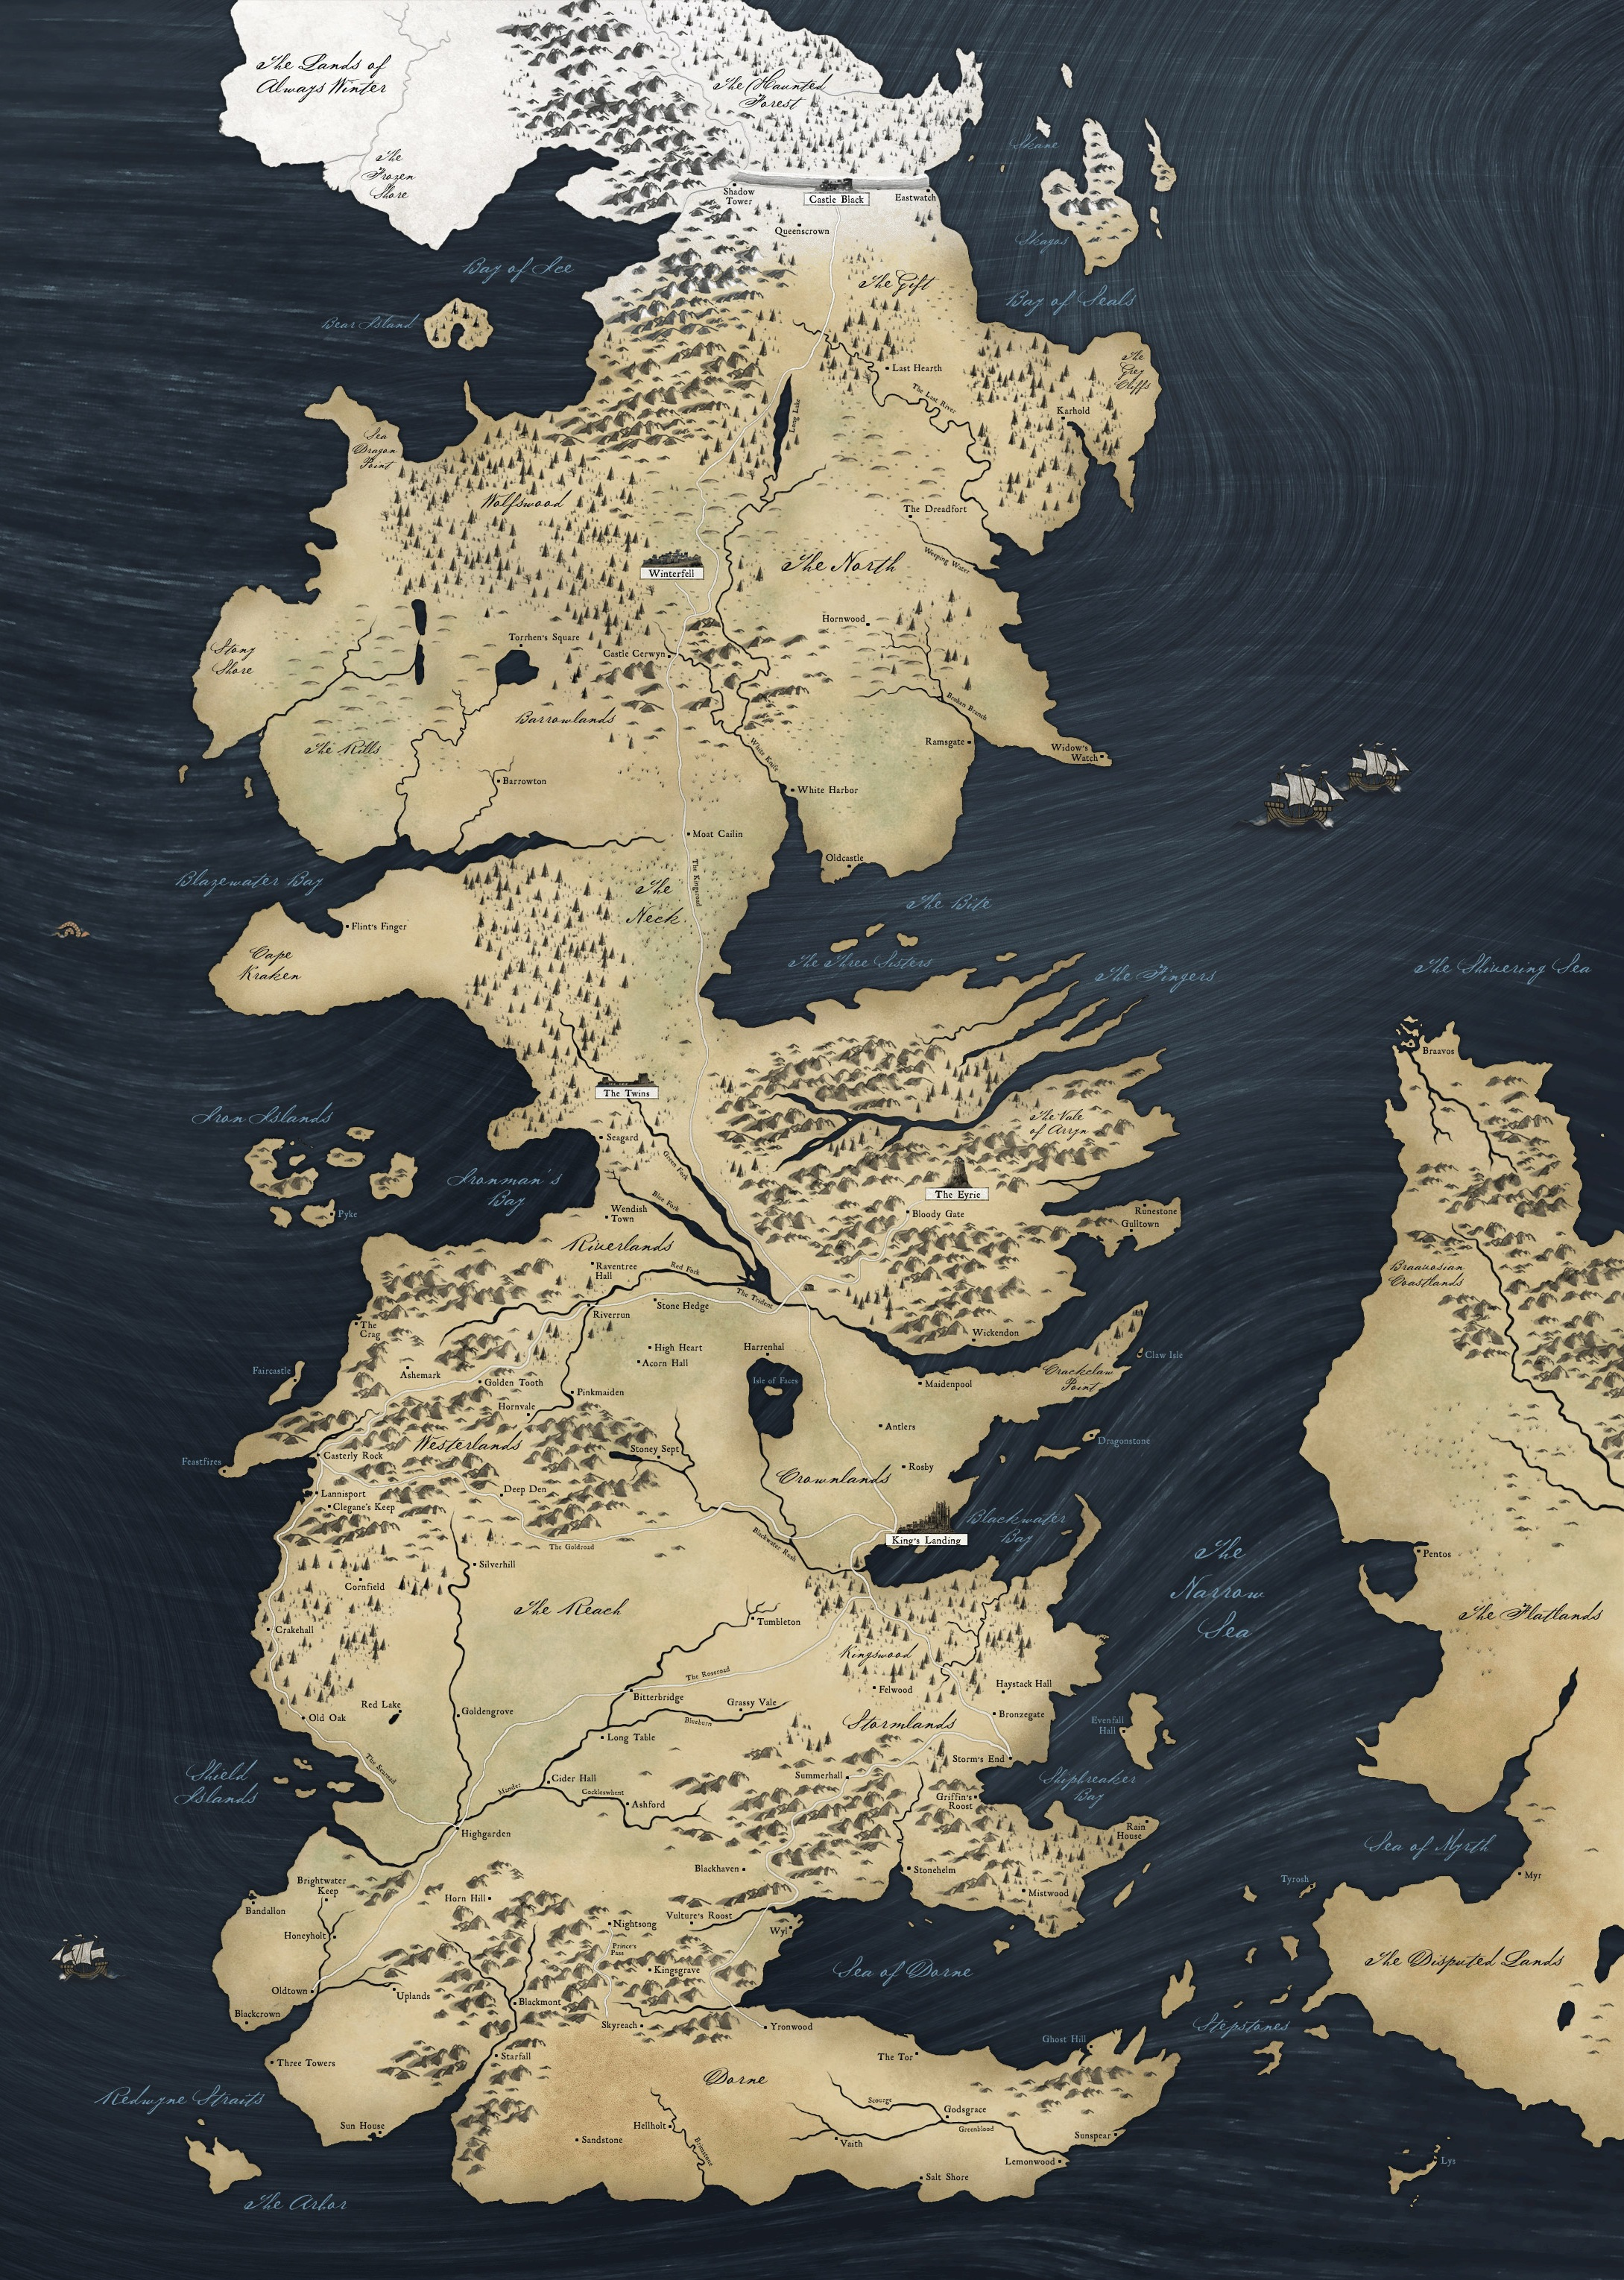 Game Of Thrones Subway Map.Navigate The Seven Kingdoms With These Game Of Thrones Transit Maps